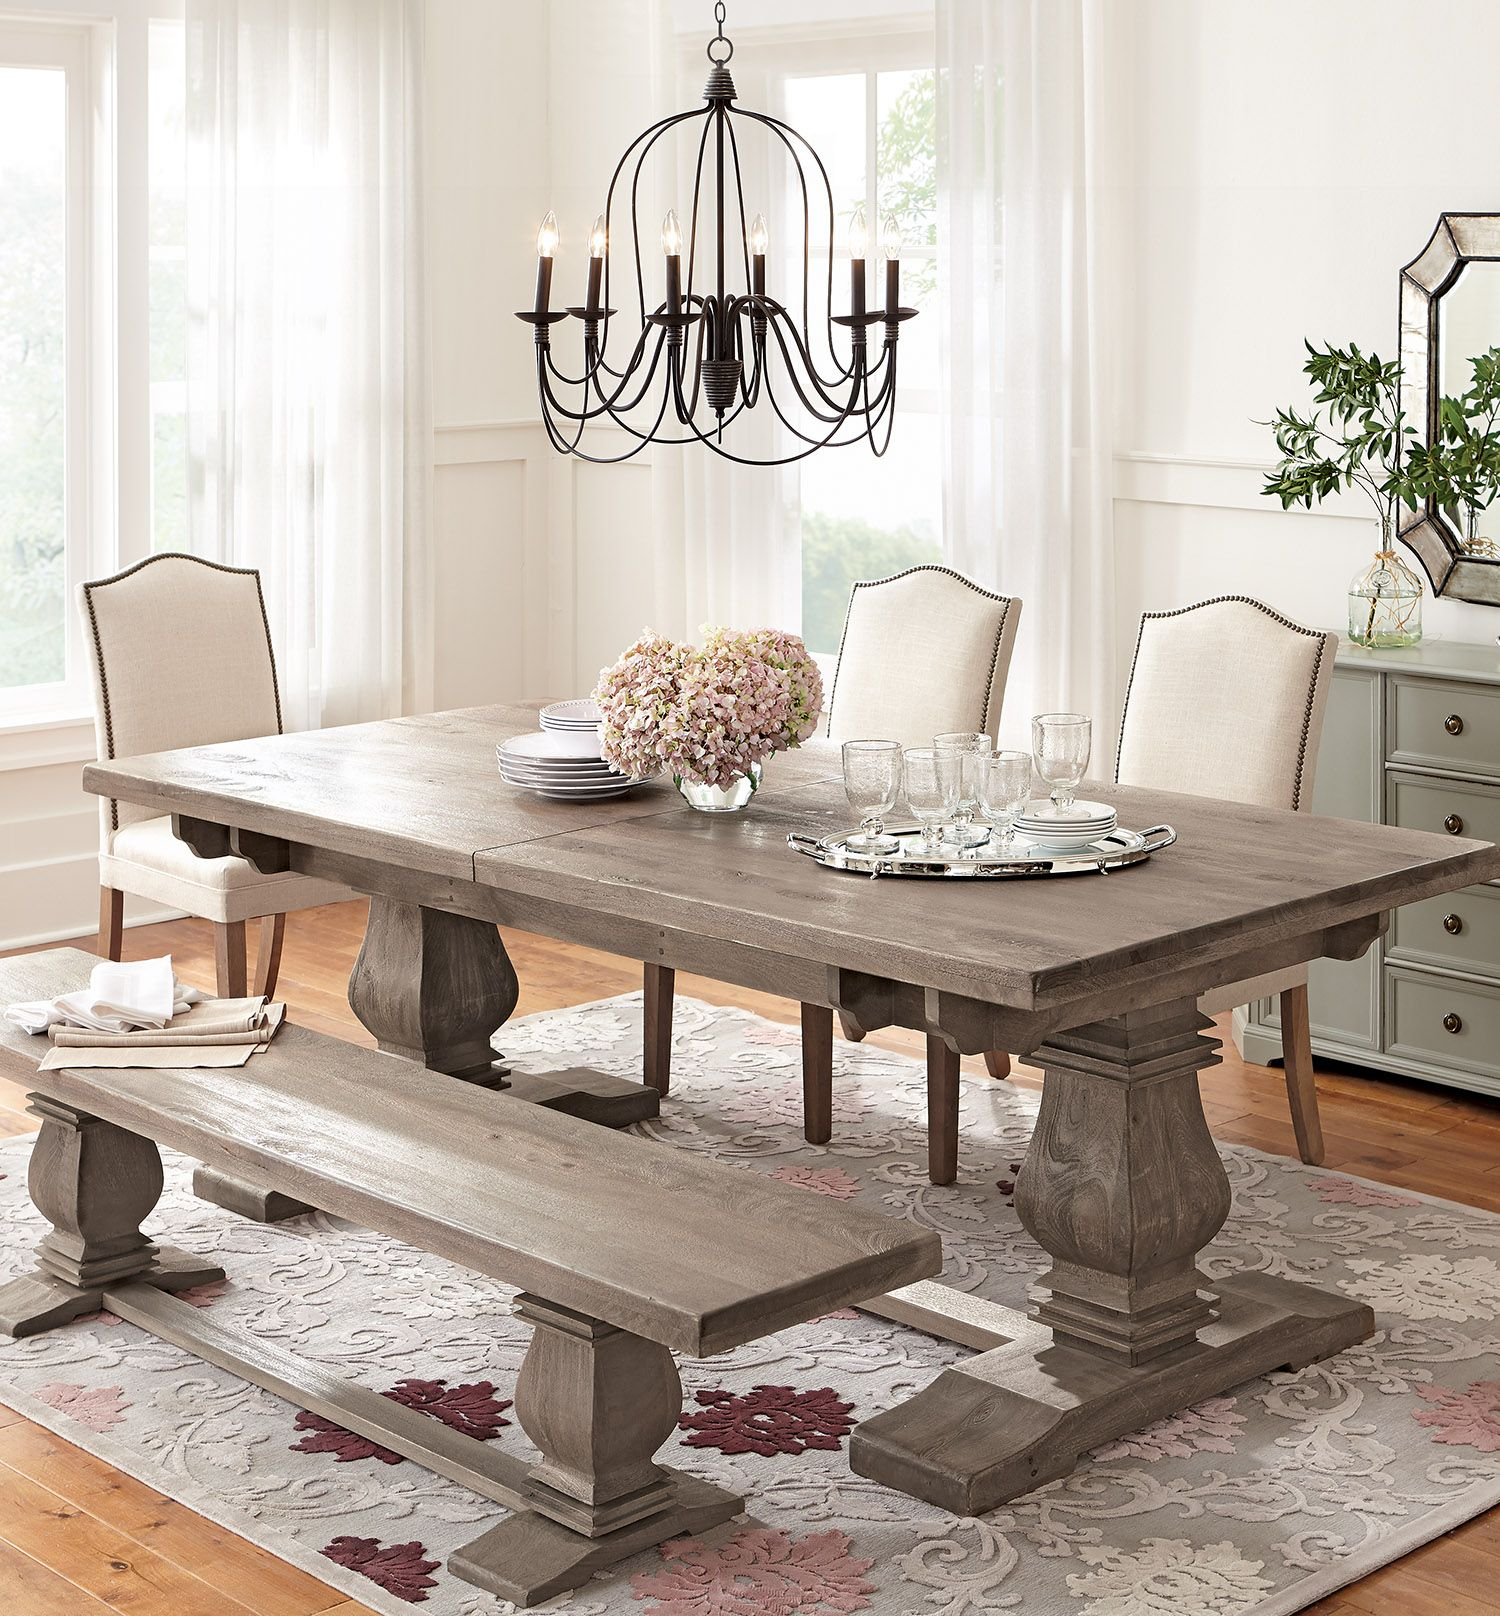 Simple Neutral Dining Chairs Allow For A Patterned Rug And Stunning Table To Shine